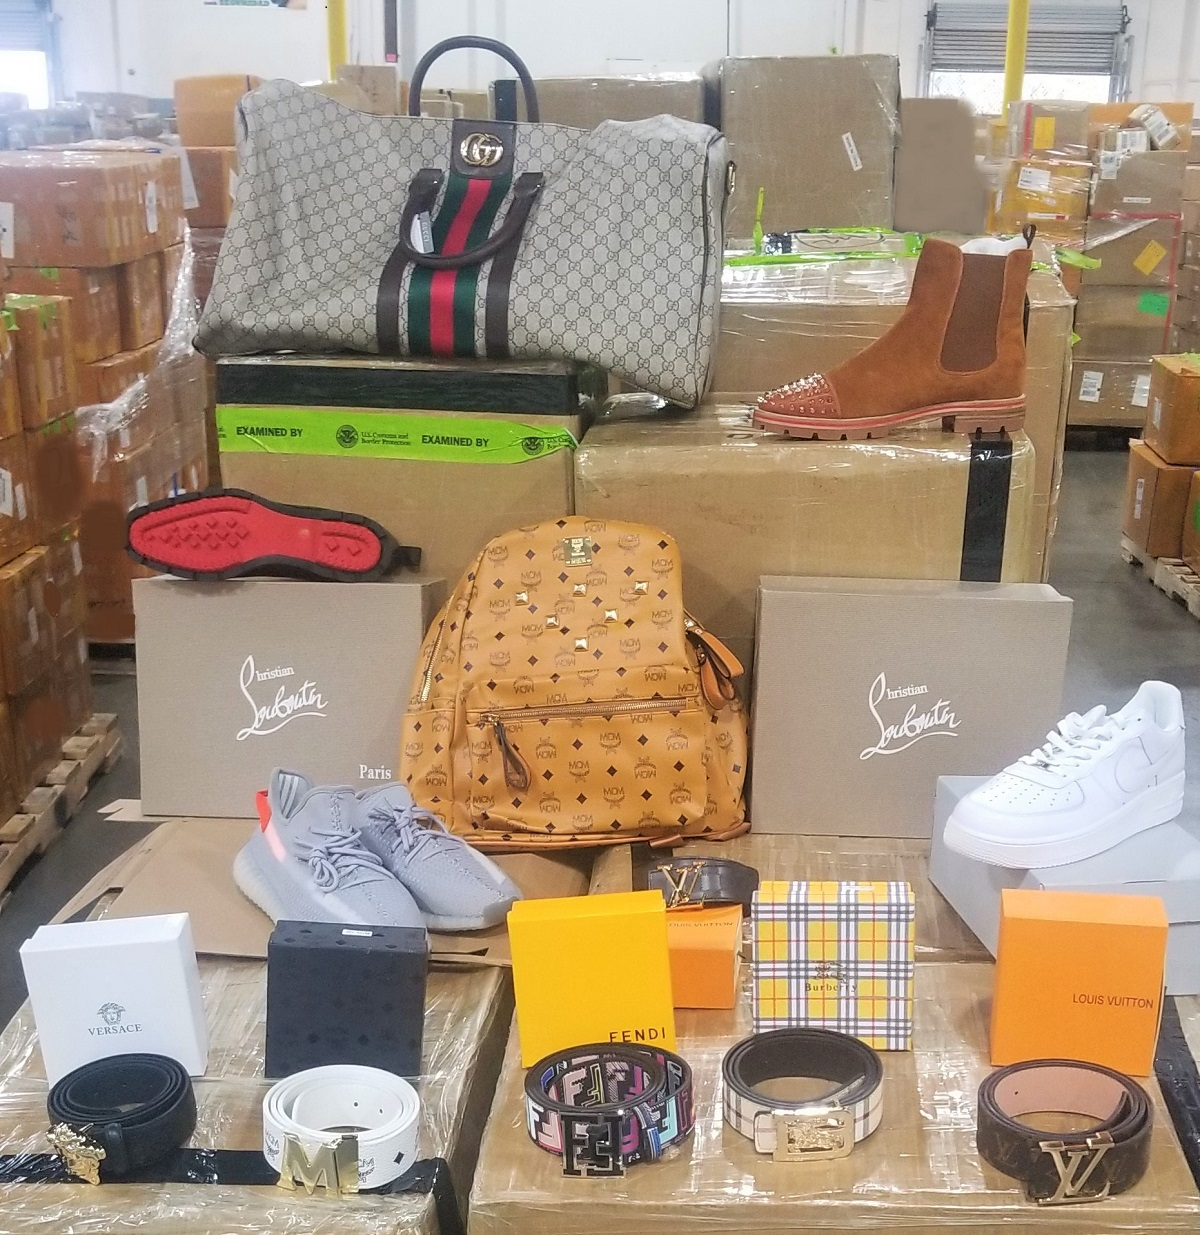 Counterfeit Products in Shipments from China Seized at Long Beach Port Complex